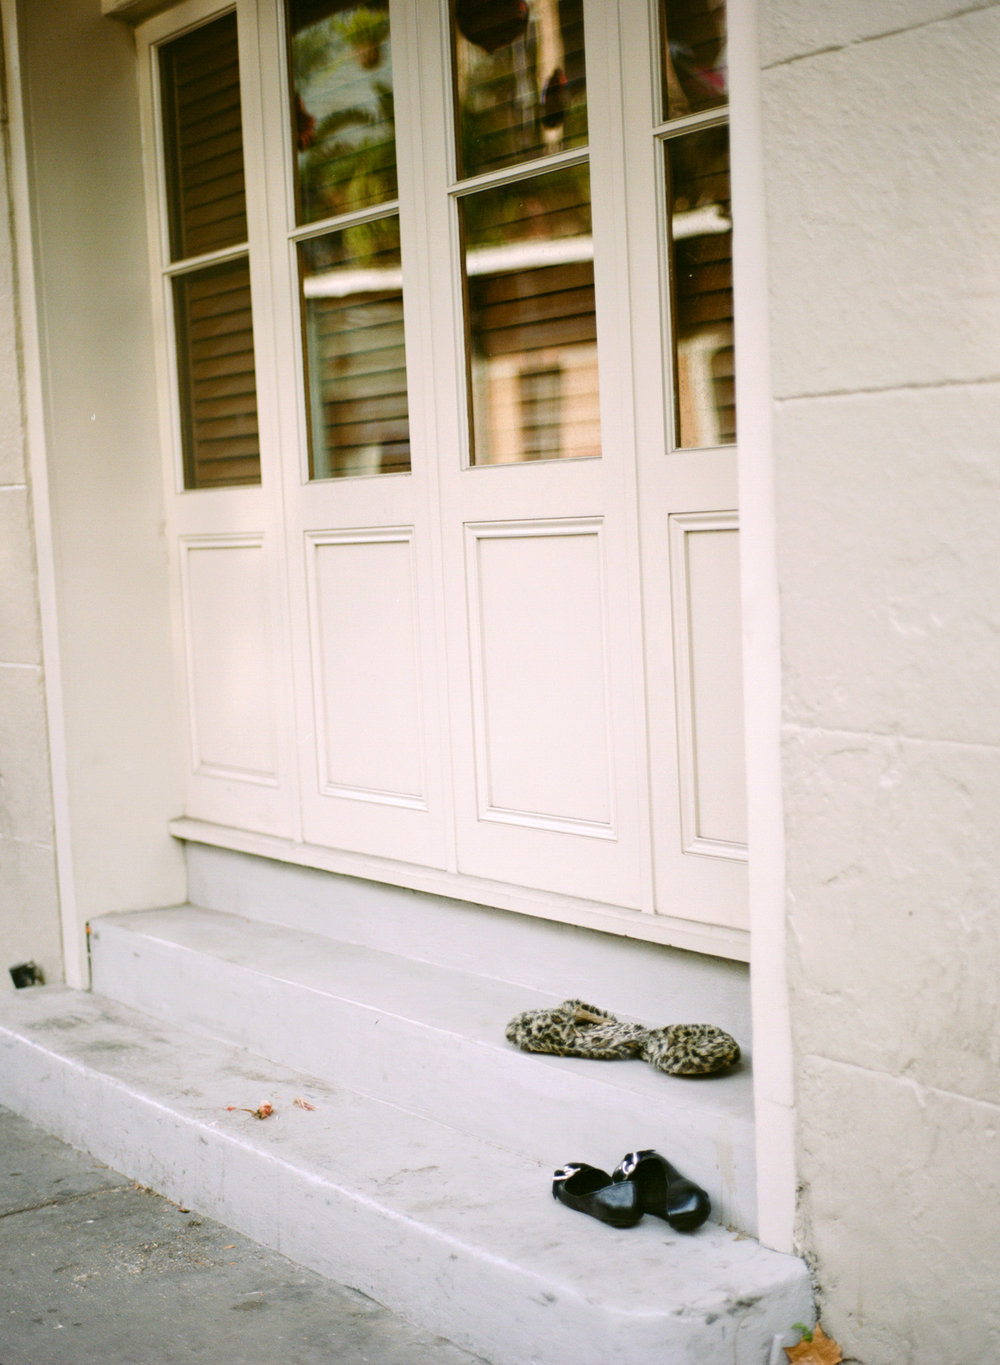 NEWORLEANS2013_©kristinmyoung_SquareLORes-10.jpg